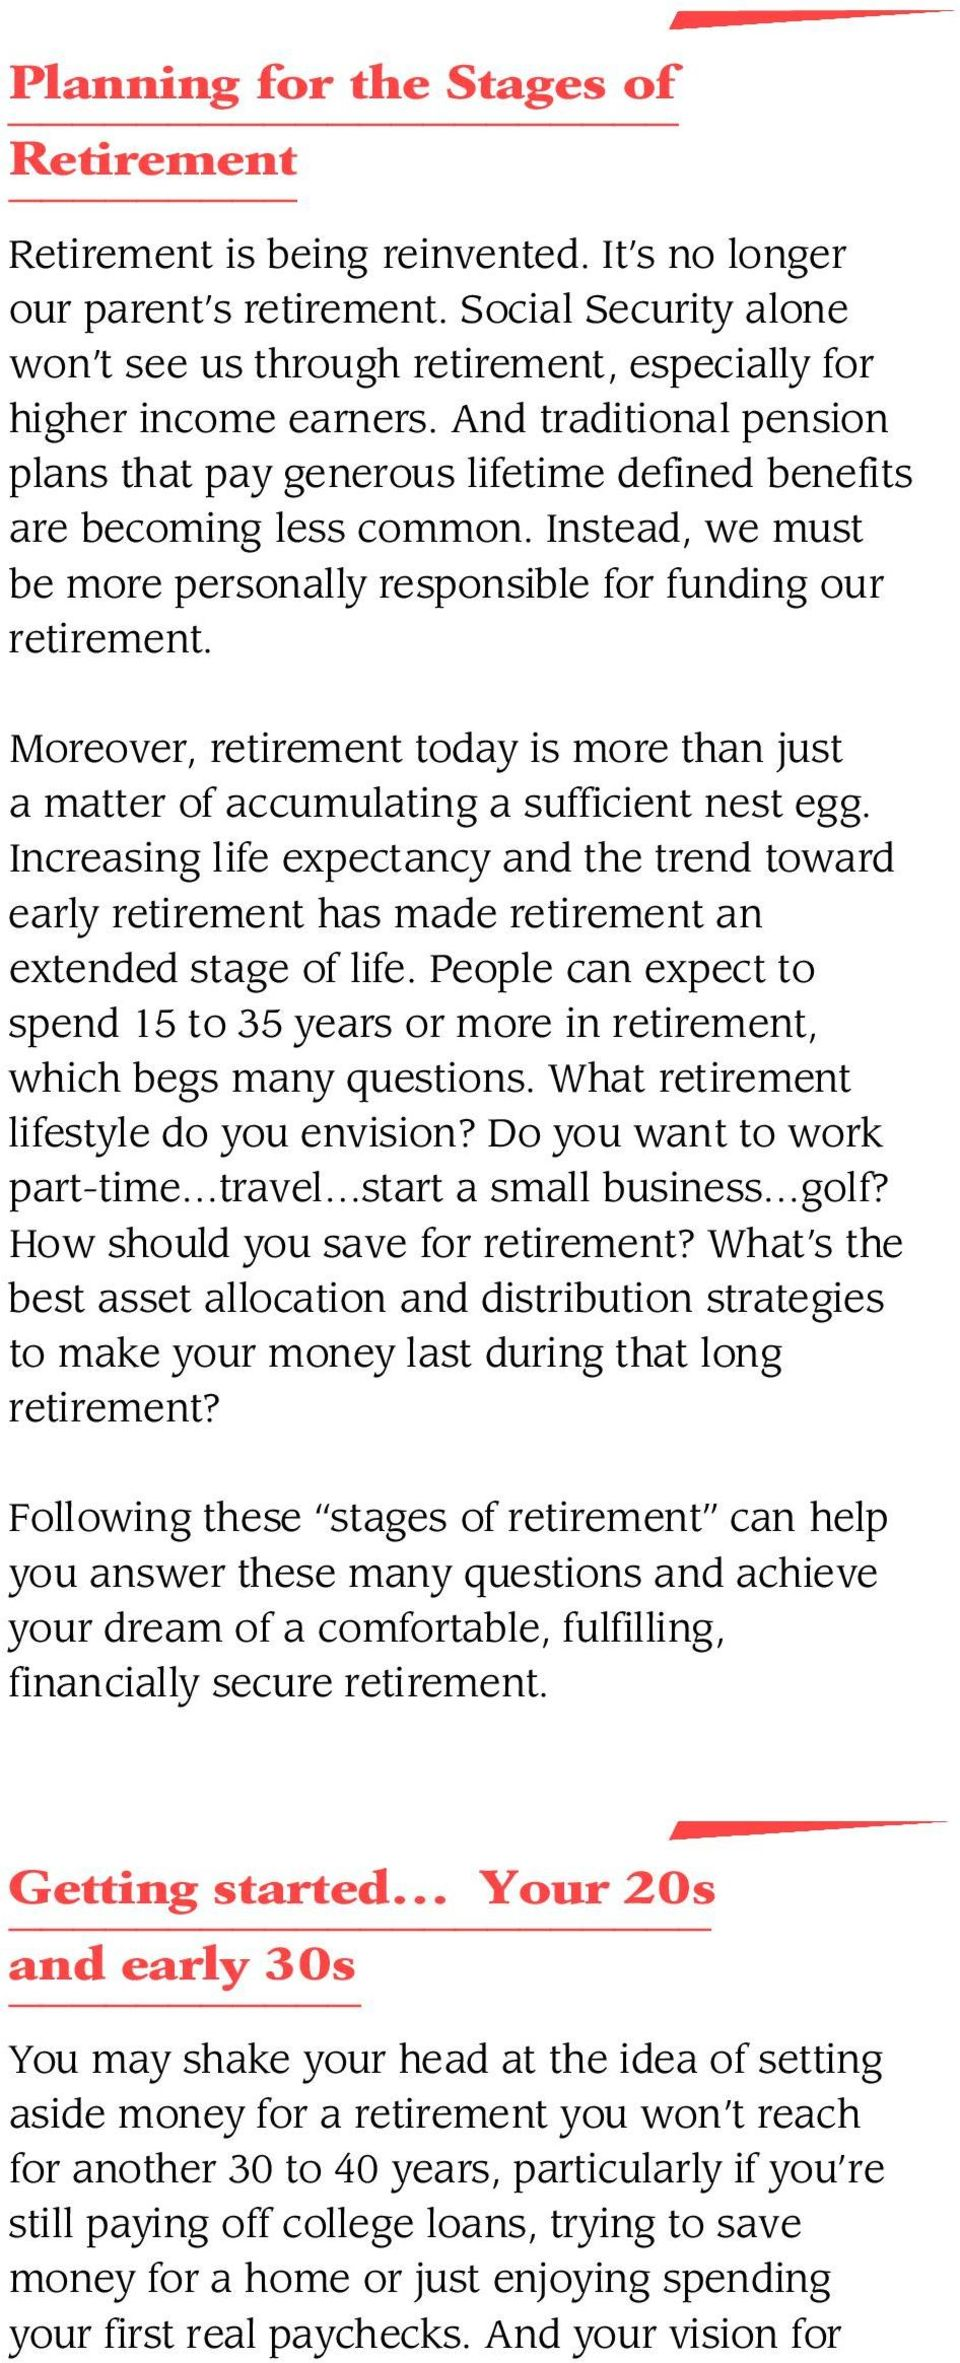 Instead, we must be more personally responsible for funding our retirement. M o r e ov e r, retirement today is more than just a matter of accumulating a sufficient nest egg.